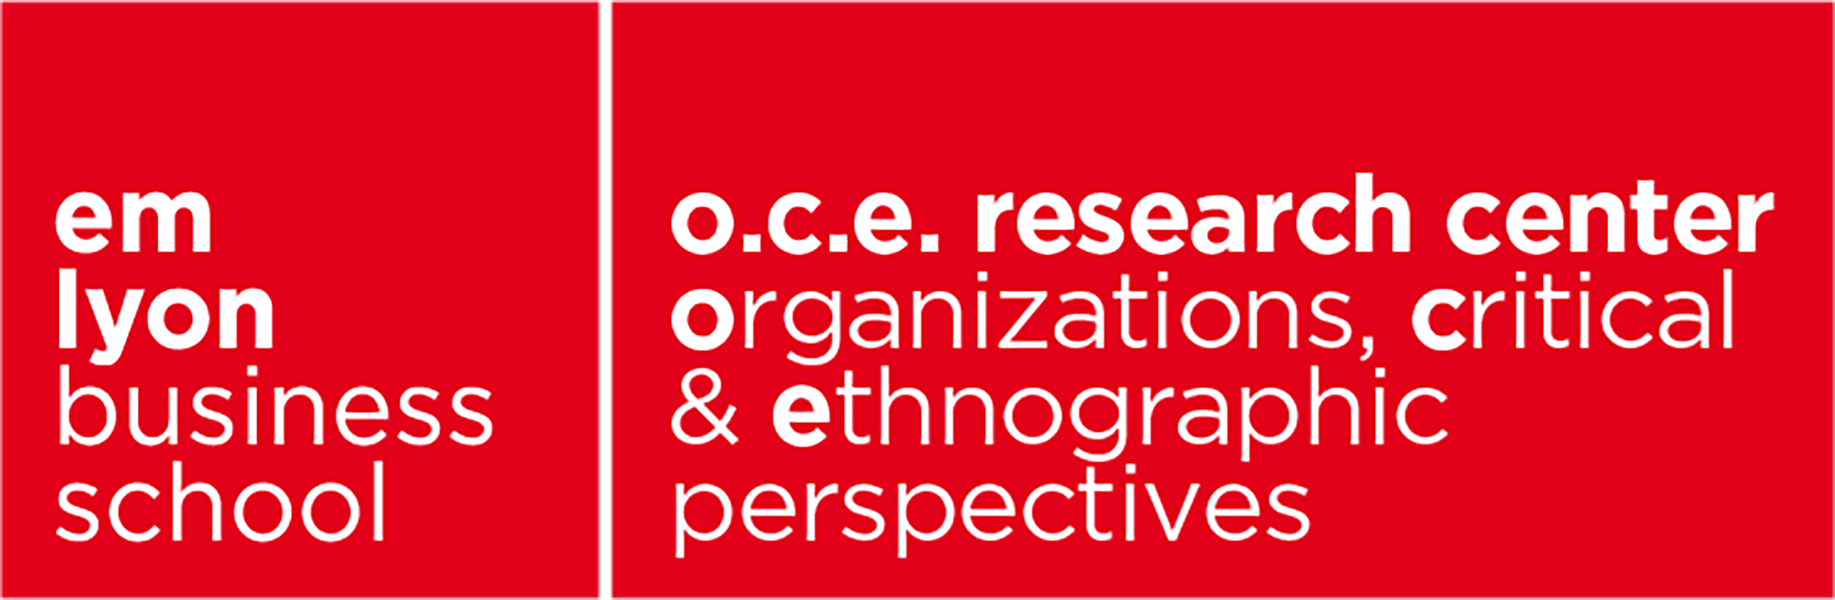 OCE Research Center